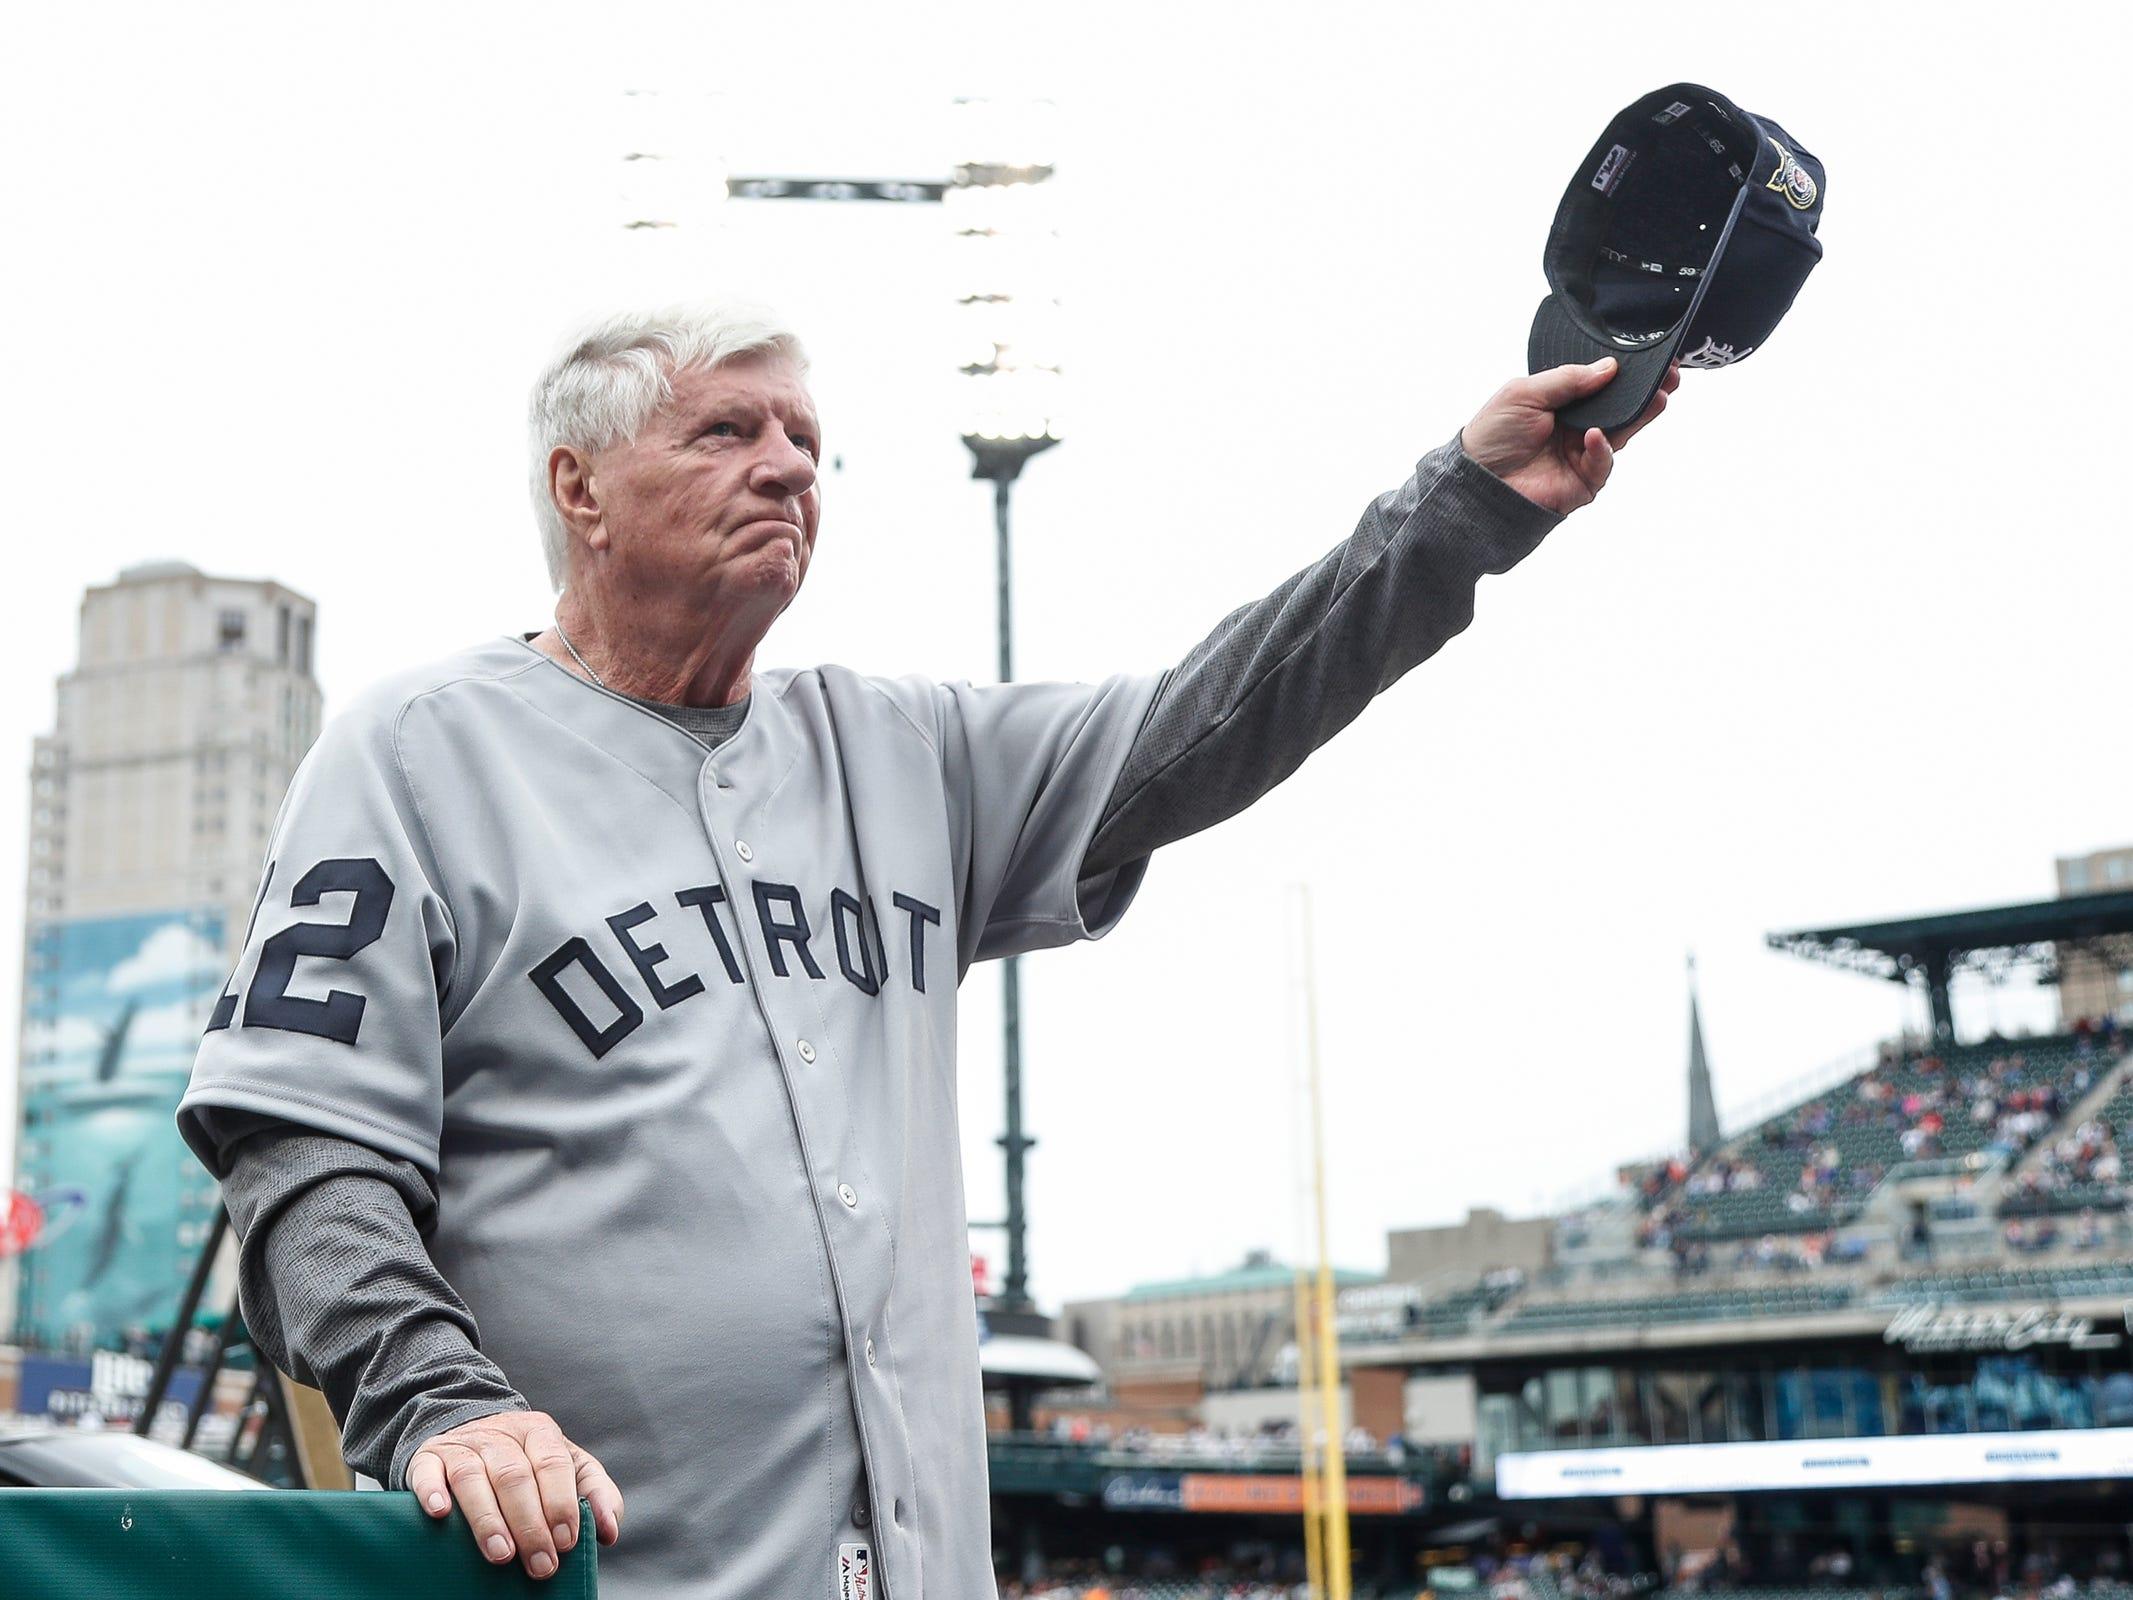 Former Detroit Tigers catcher Jim Price waves at the crowd during the celebration of the 50th anniversary of the 1968 World Series championship at Comerica Park in Detroit, Saturday, Sept. 8, 2018.